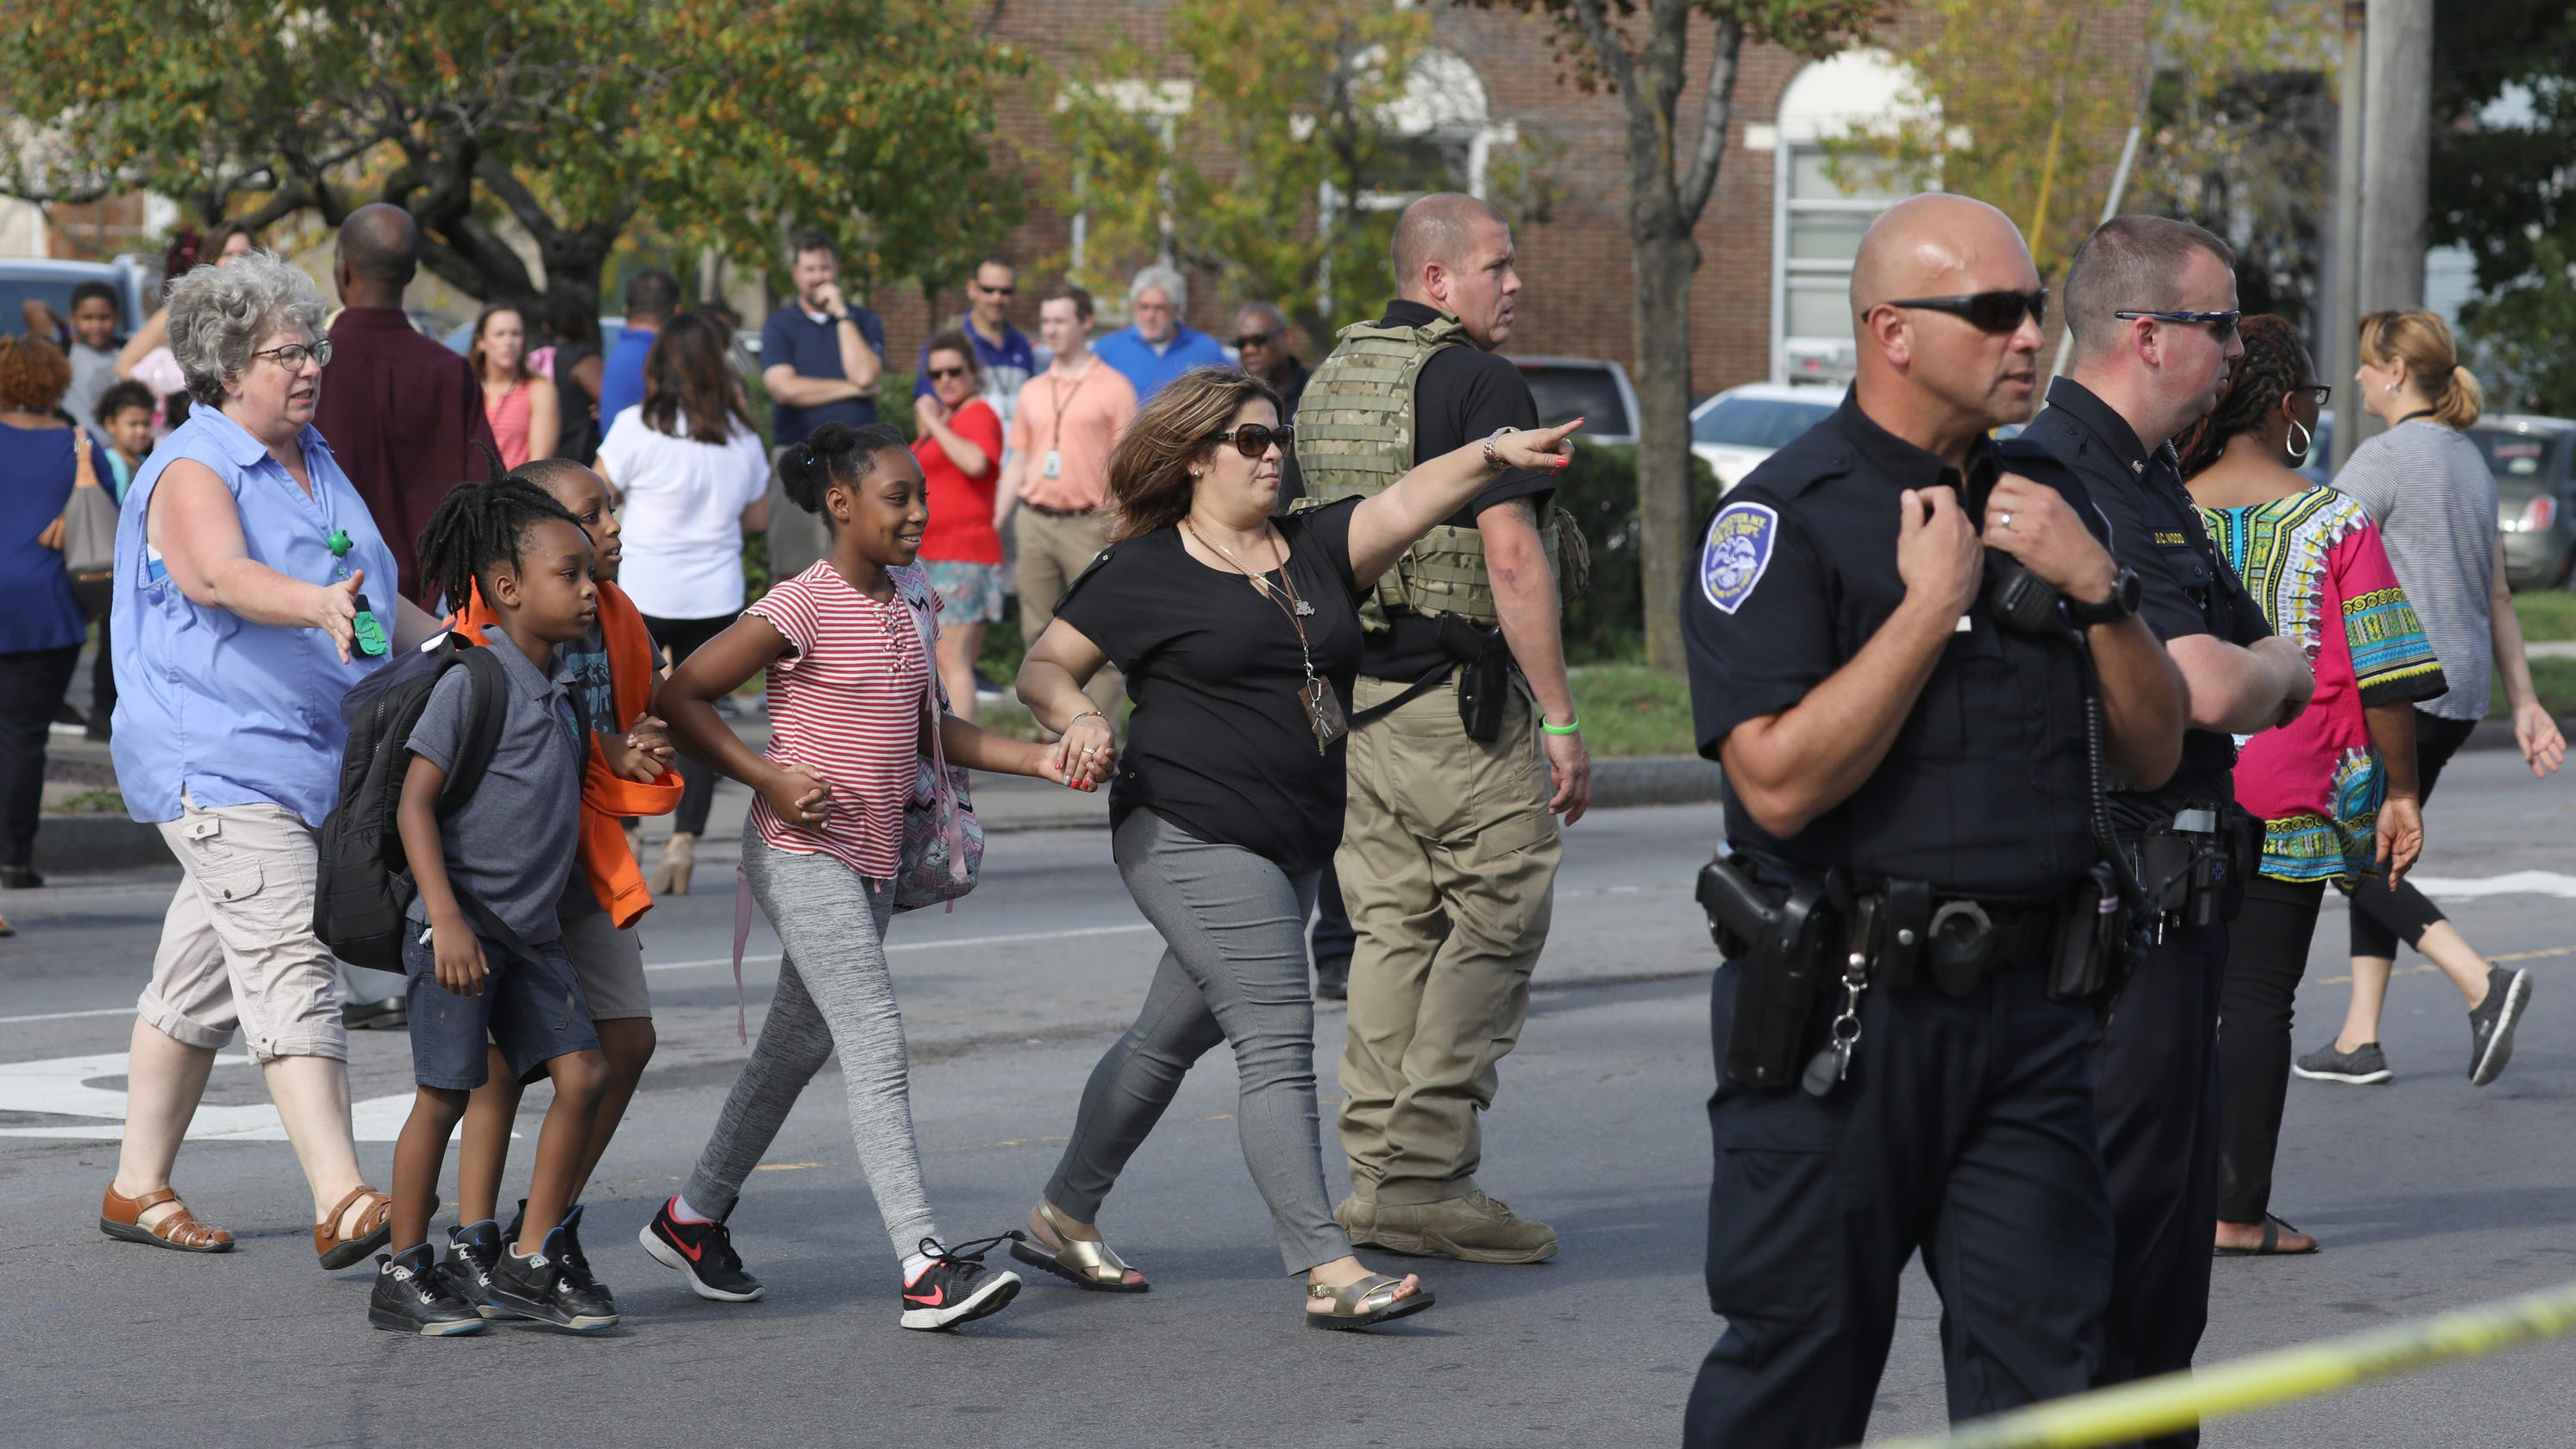 Rochester NY shooting, what we know: 2 dead, chase, volley of gunfire